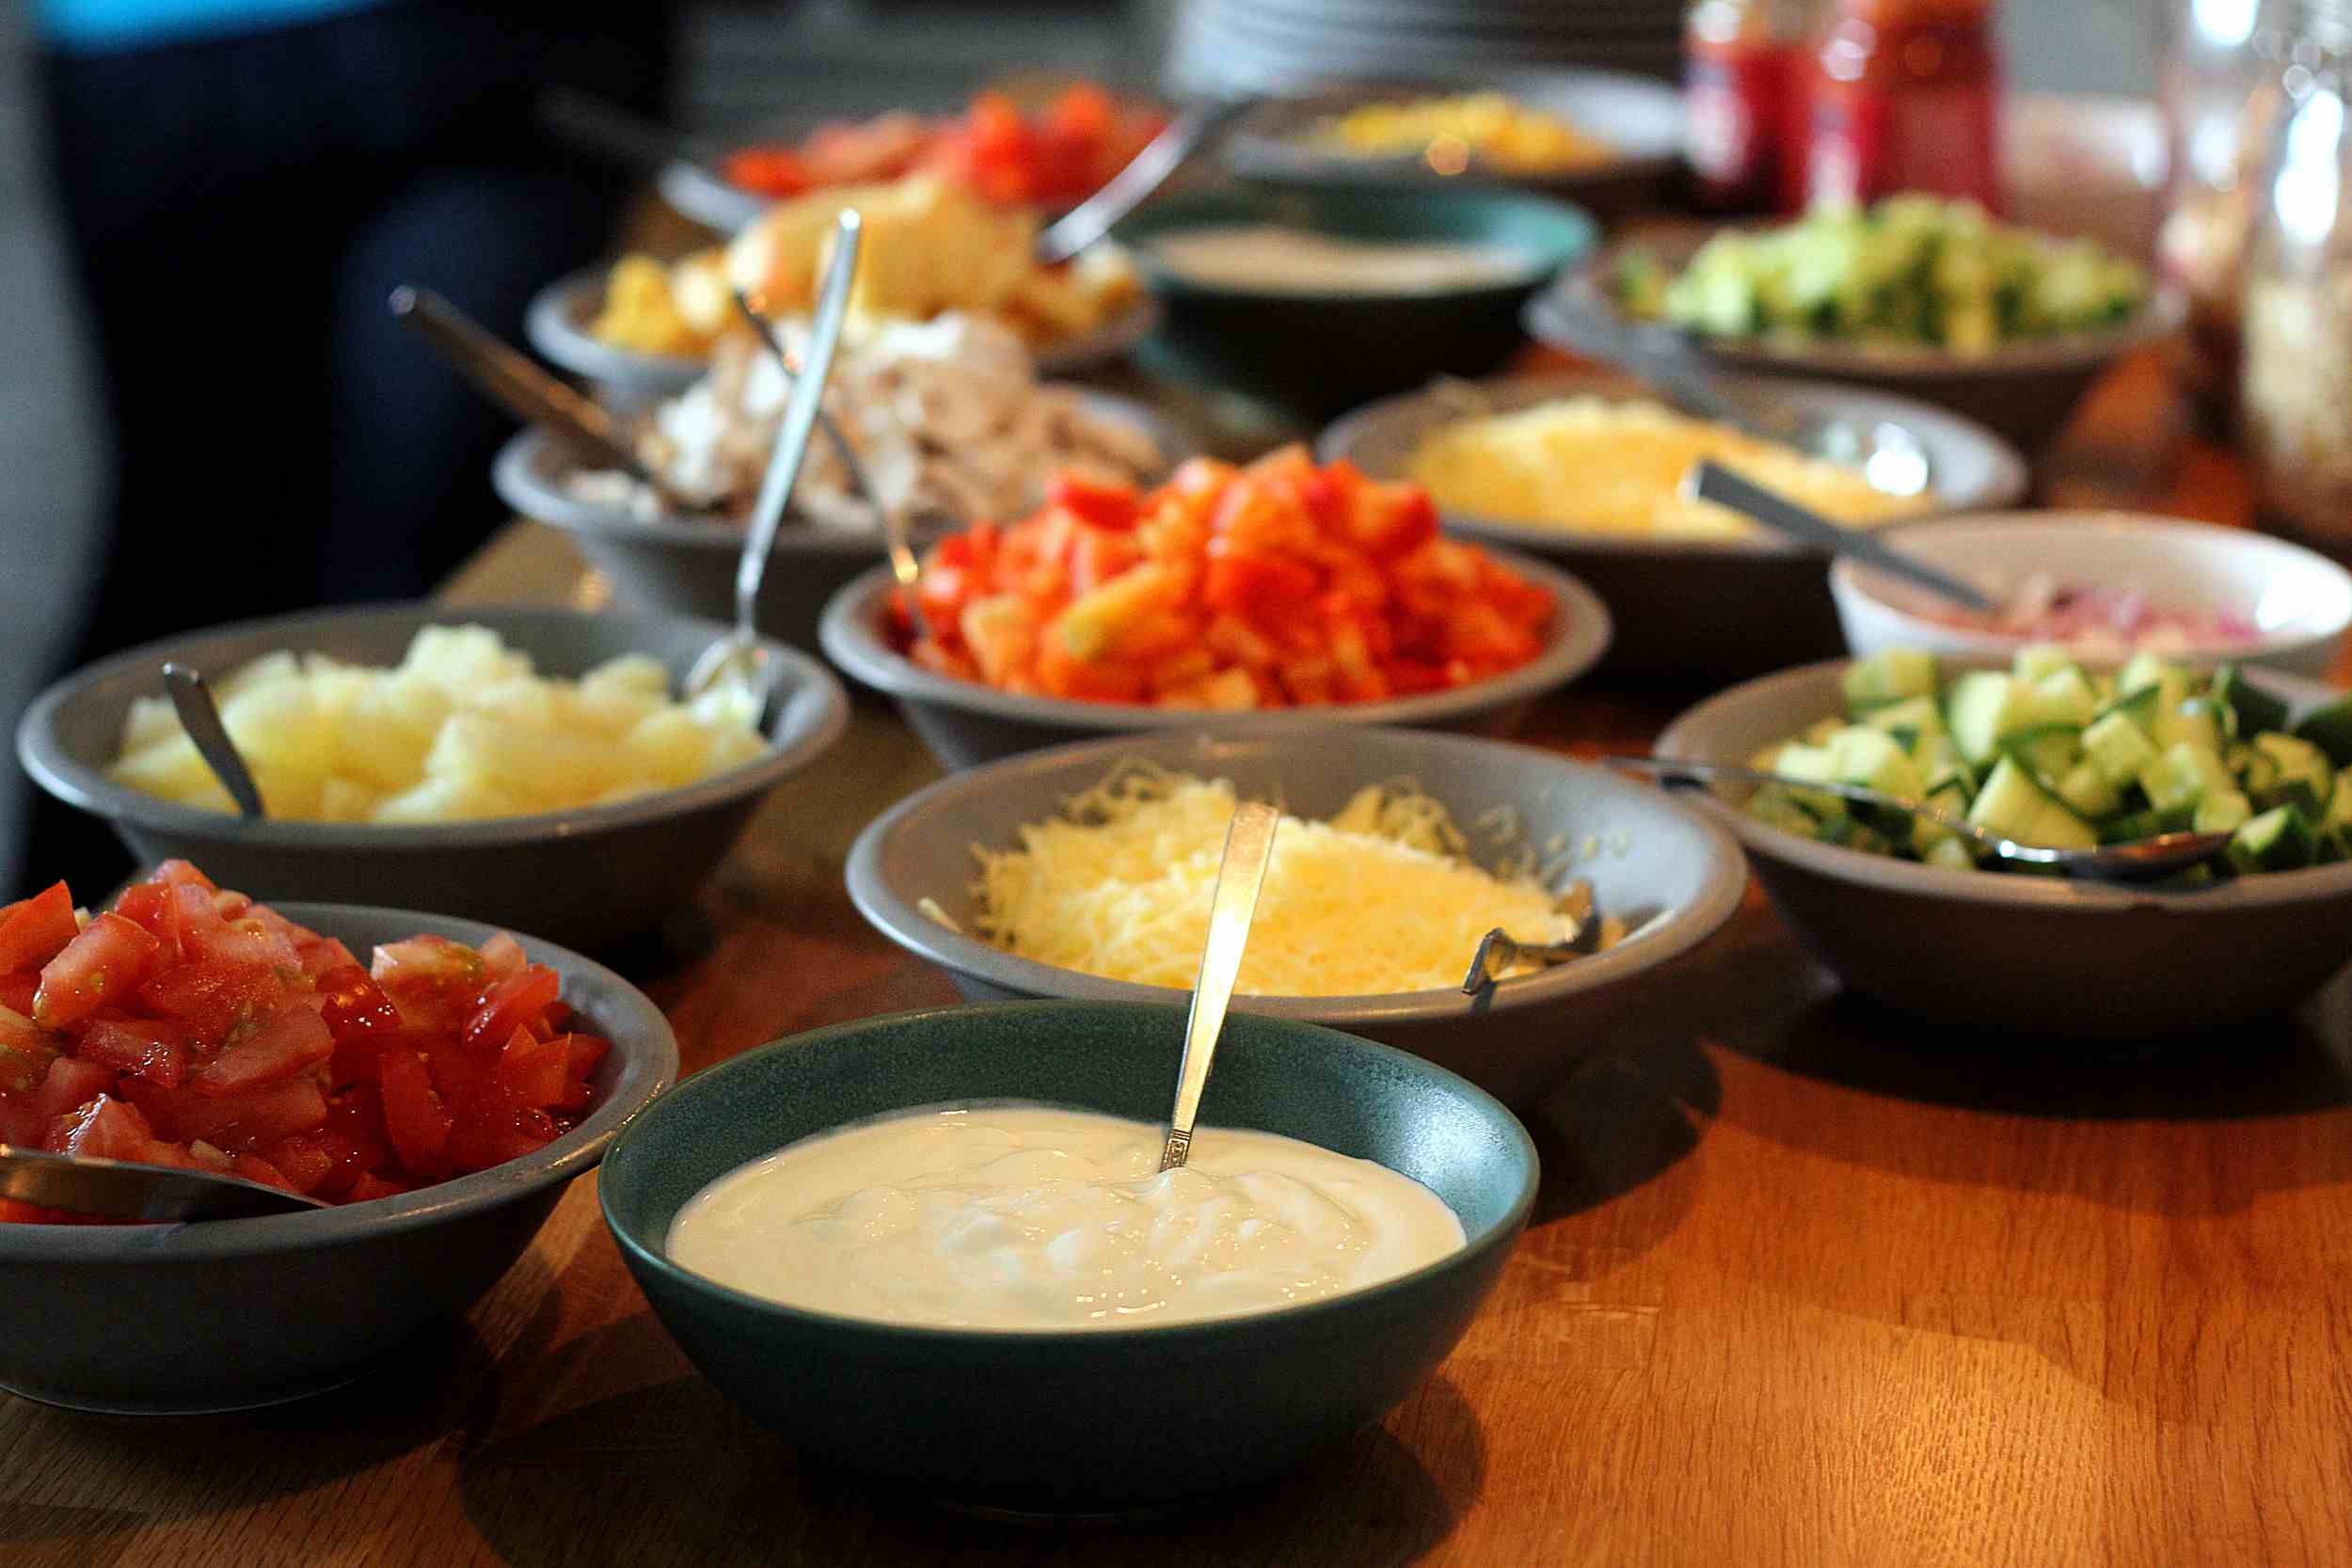 Mexican garnishes laid out across table